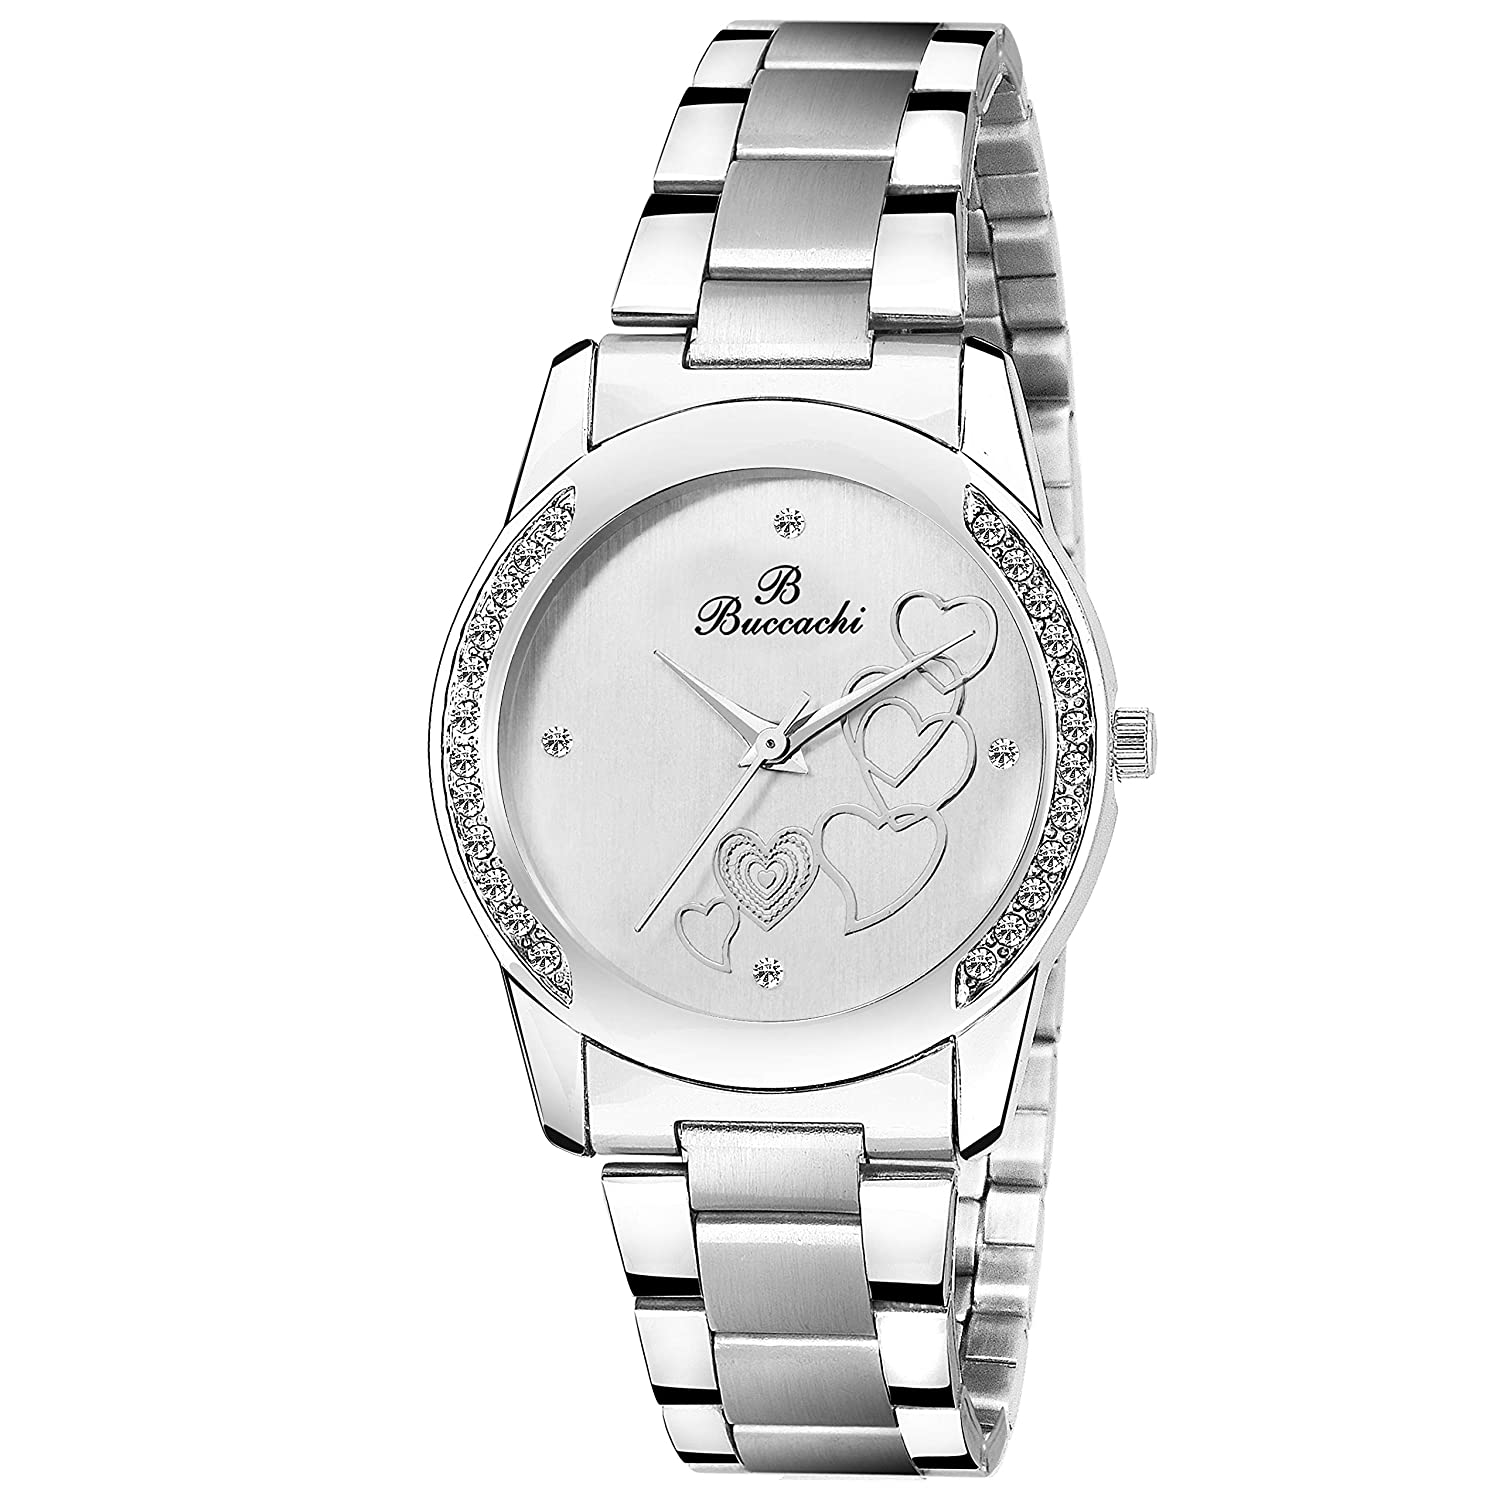 Buccachi Analogue White Round Dial Watch for Women's (B-L1032-WT-CH)